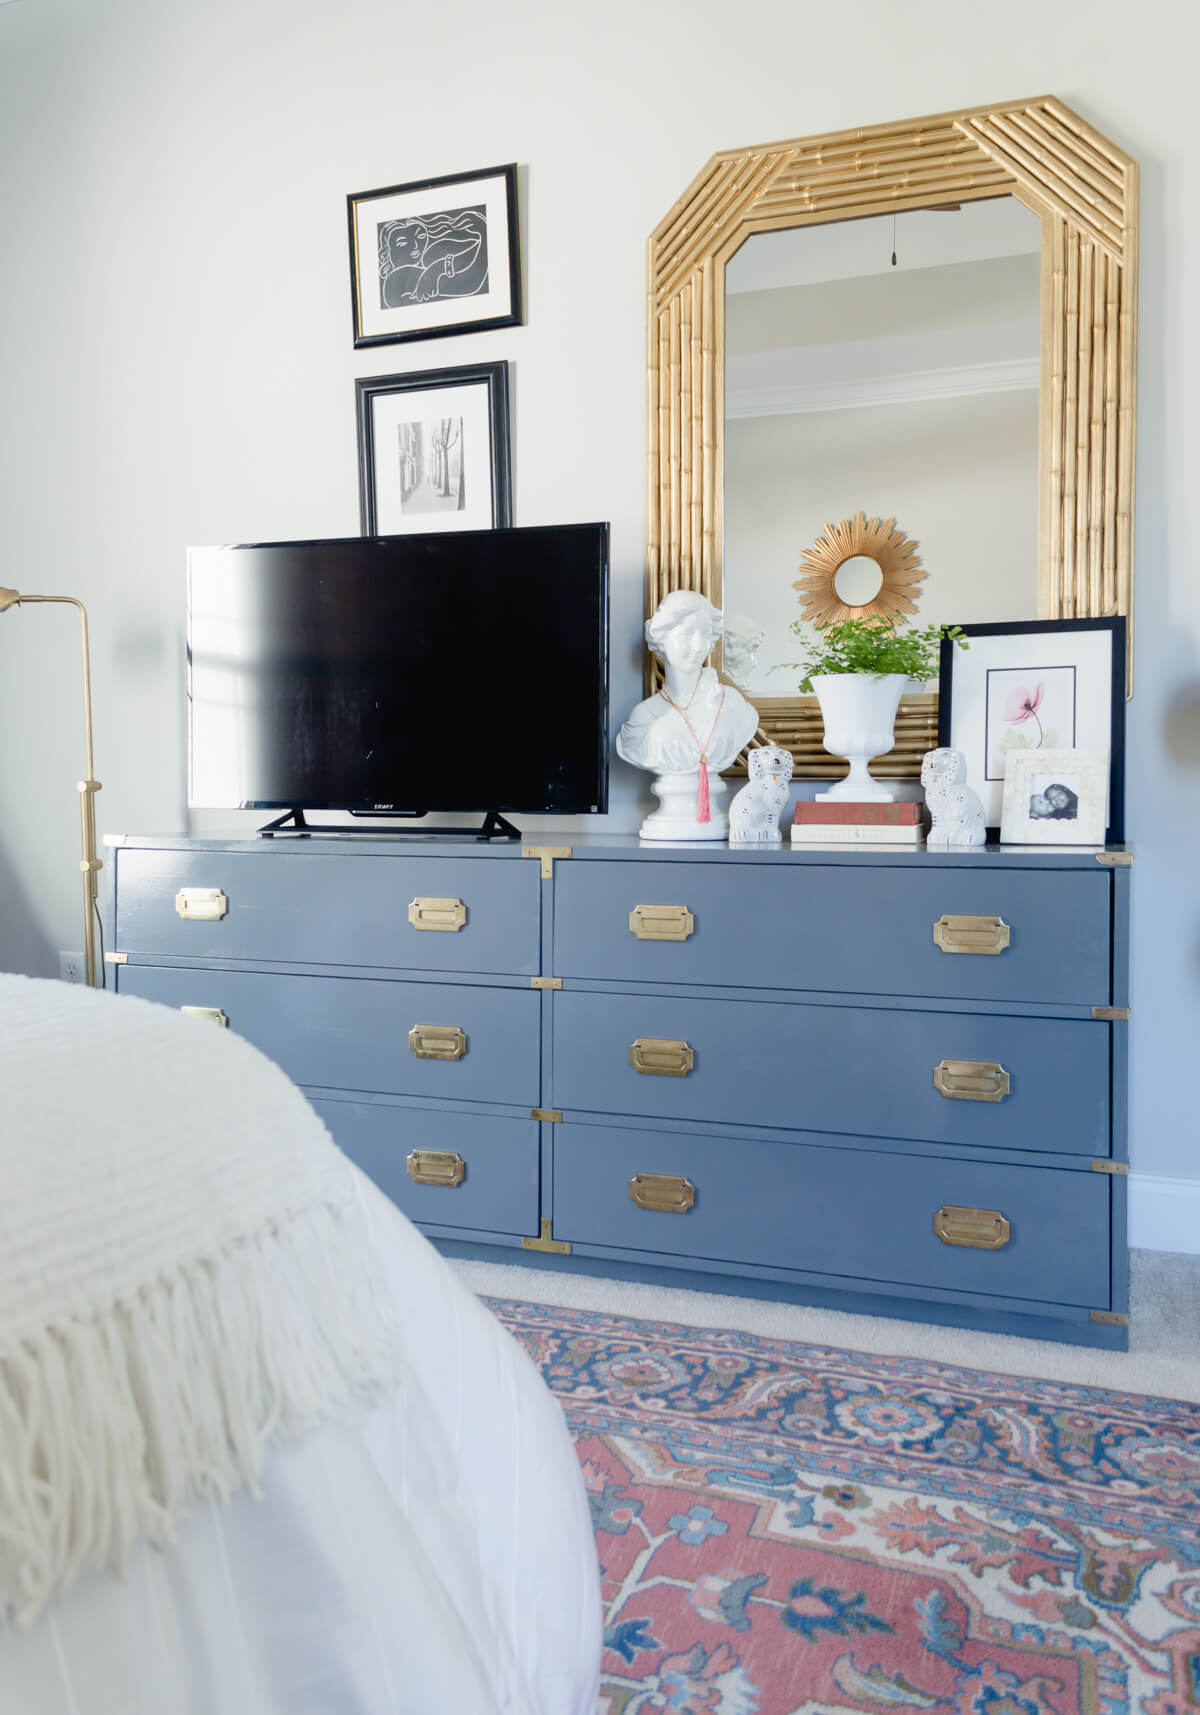 6 High End Style Thrift Store Furniture Makeovers